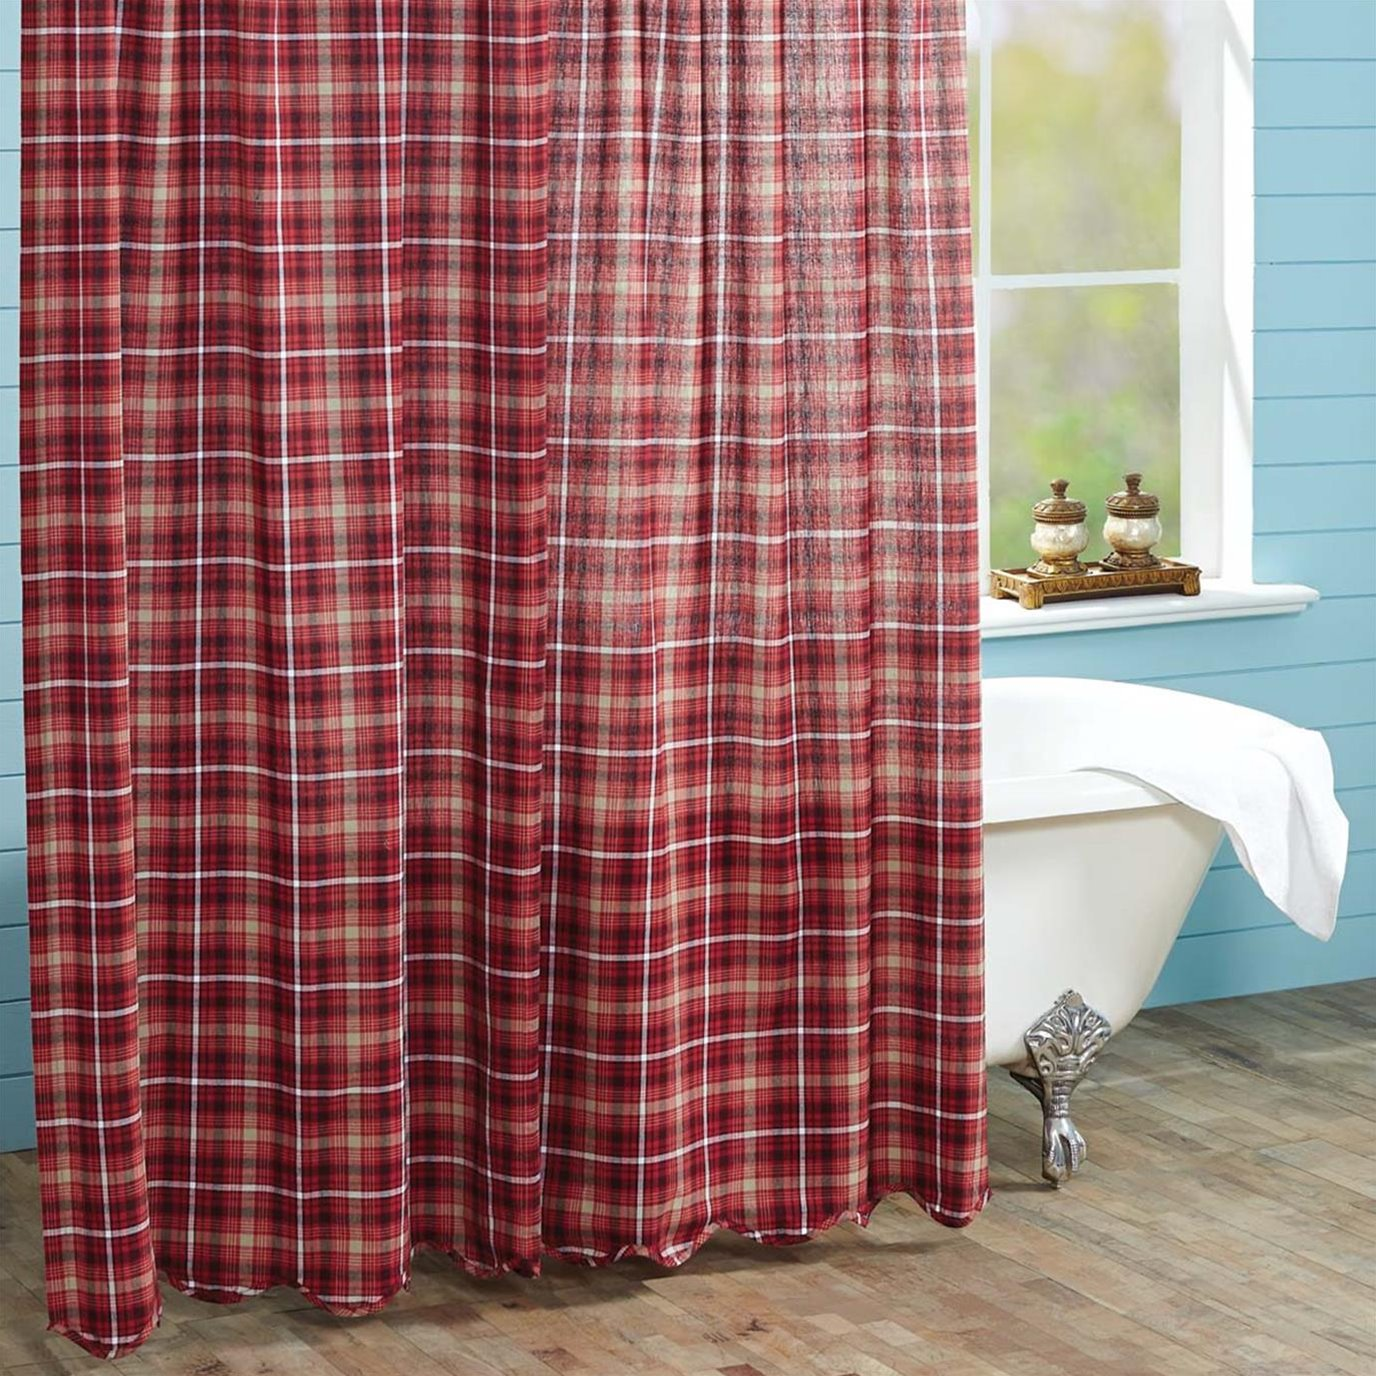 Braxton Scalloped Shower Curtain 72x72